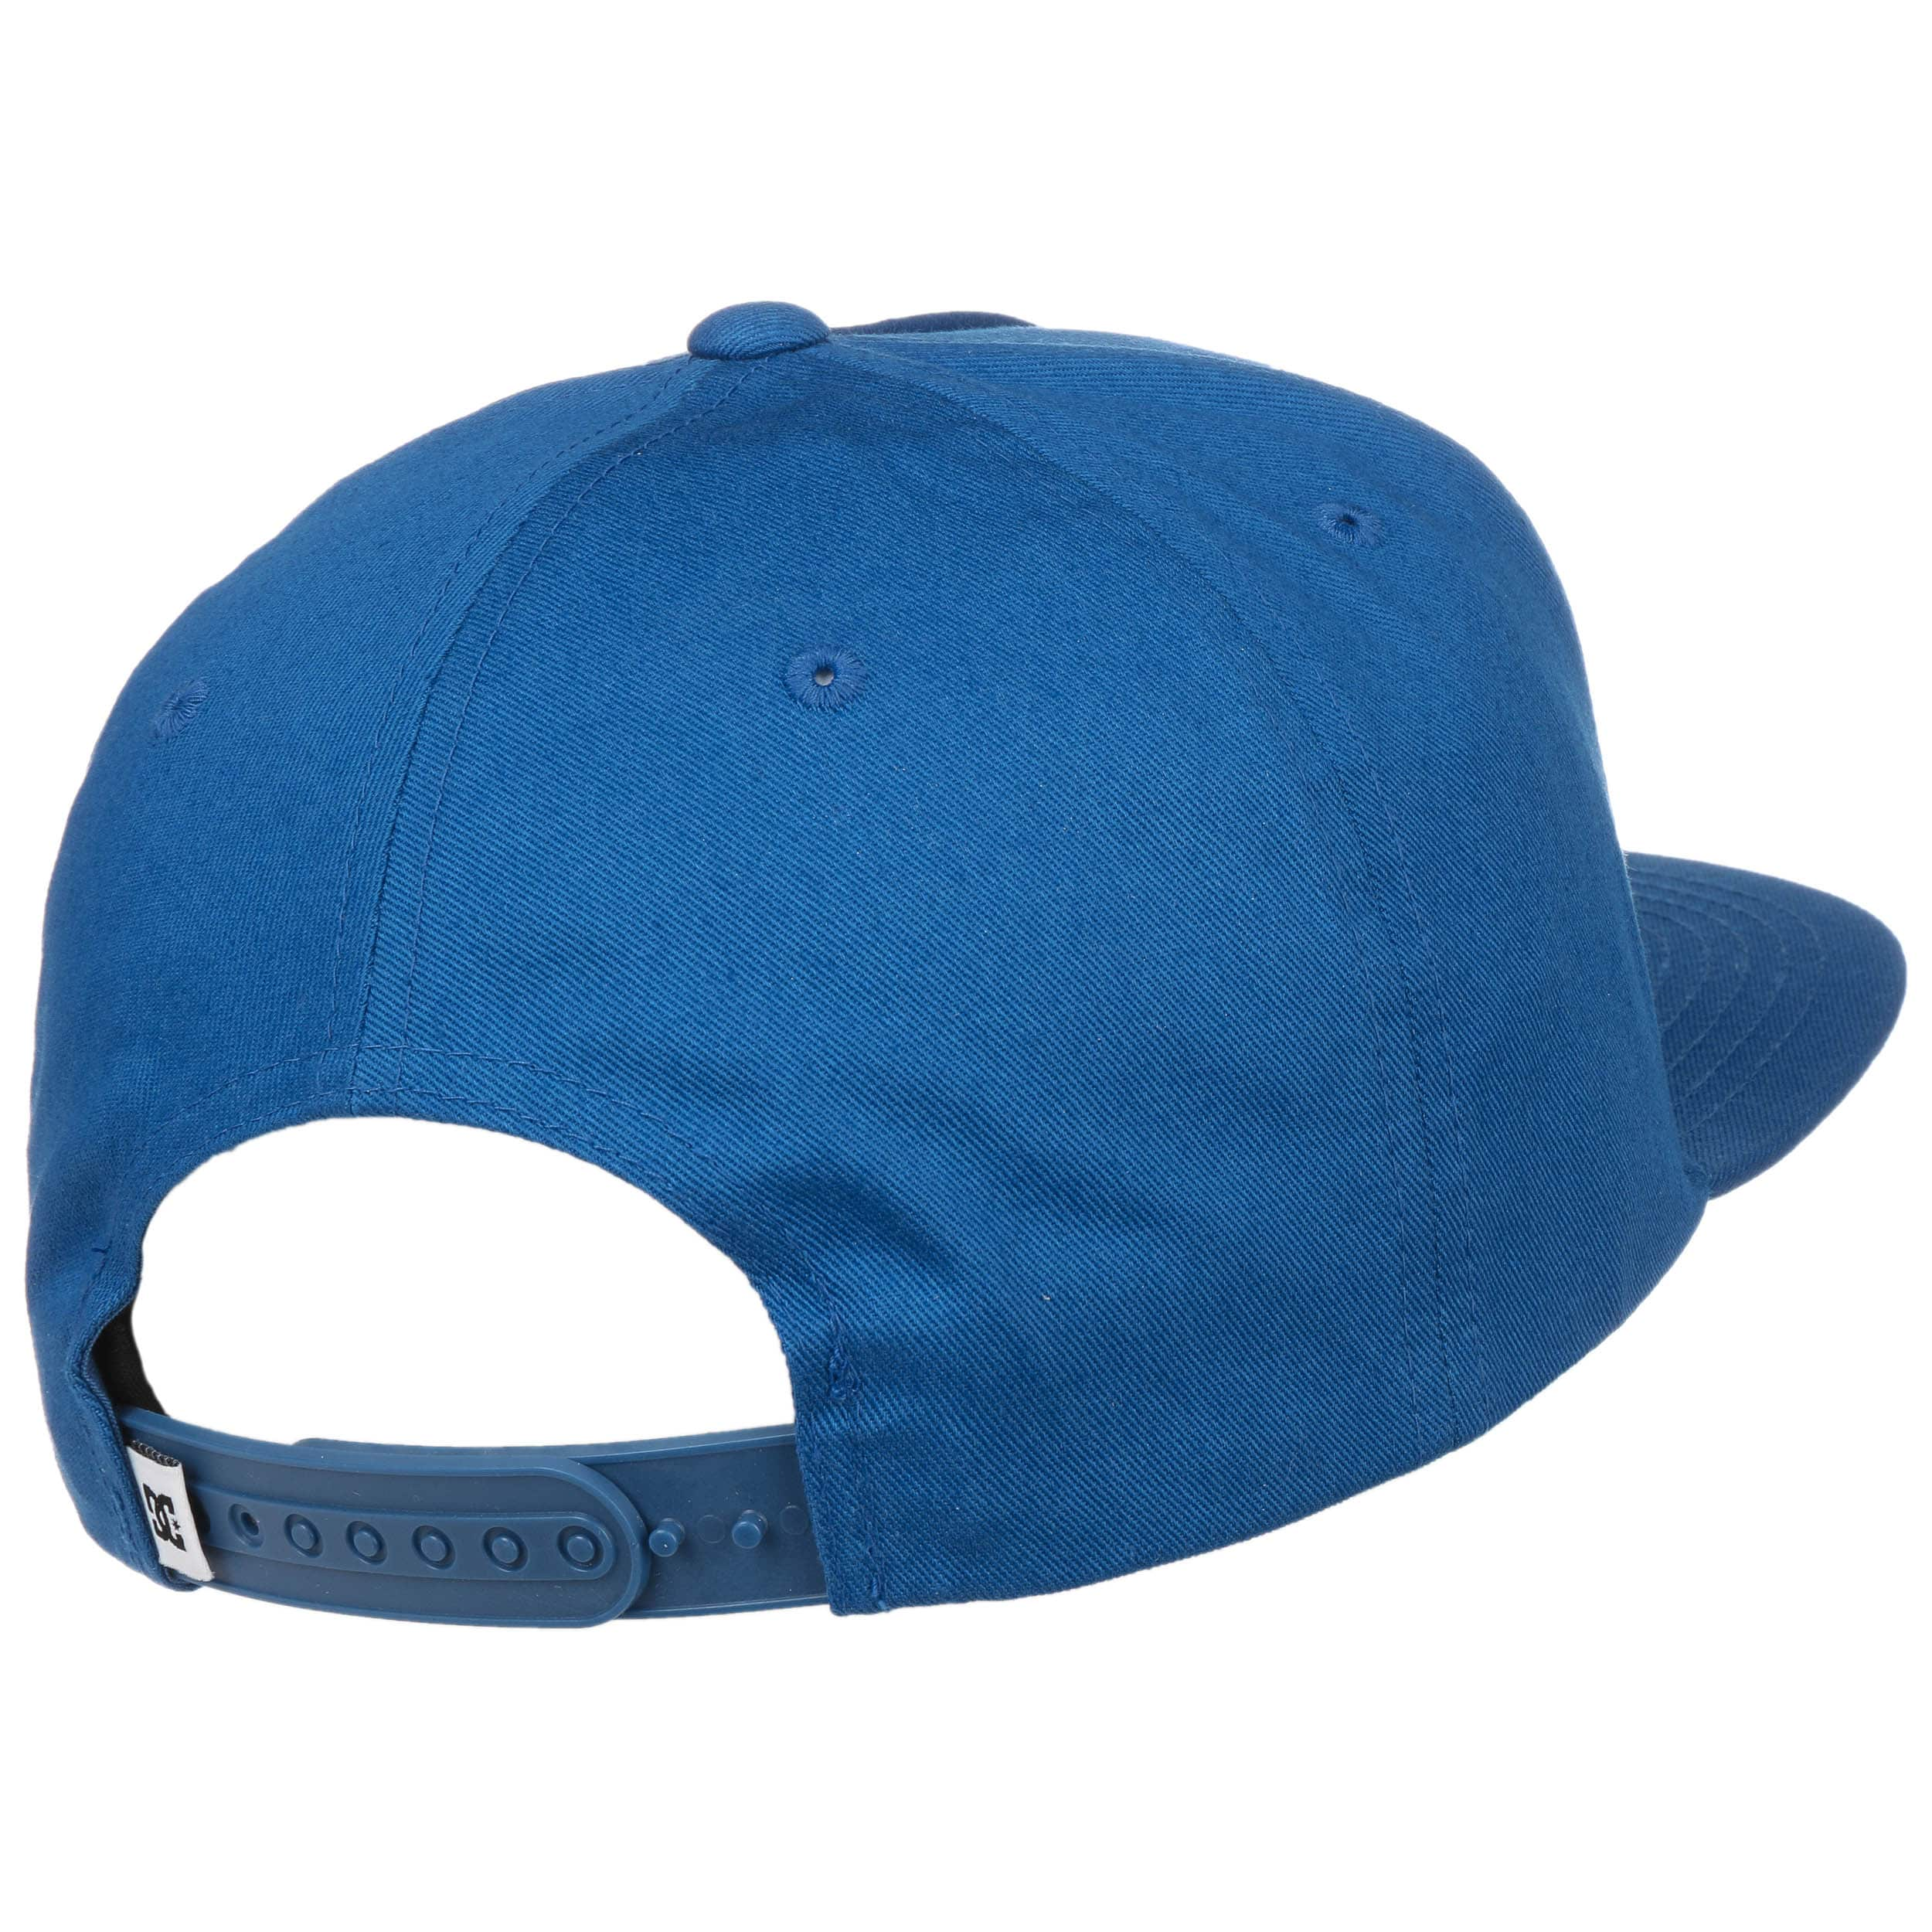 9362dbb0433 ... Snapdoodle Snapback Cap by DC Shoes Co - royal-blue 3 ...